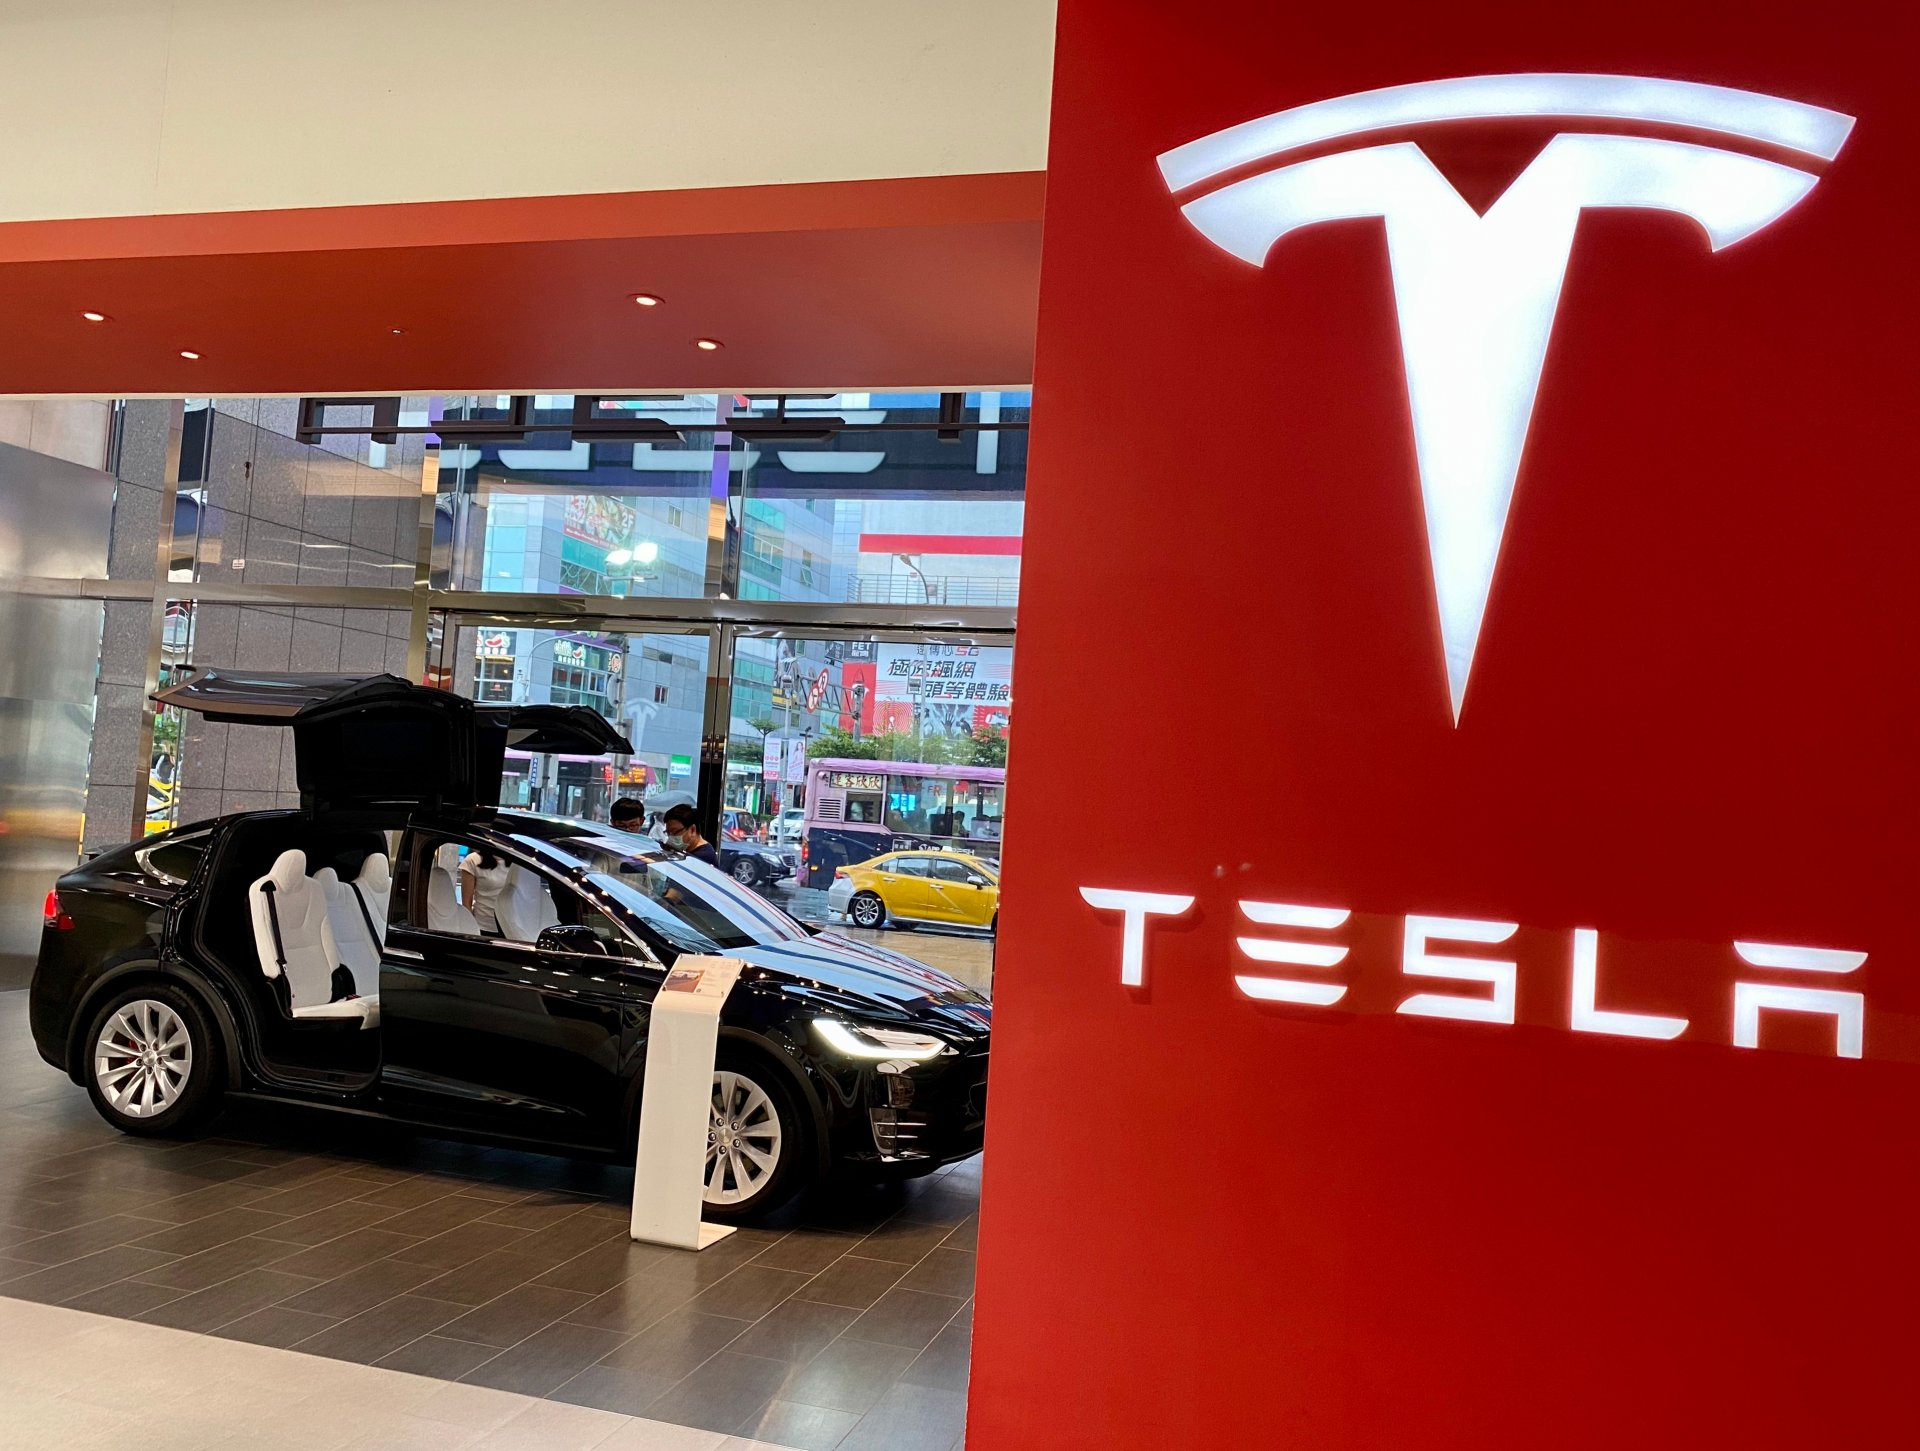 Mandatory Credit: Photo by RITCHIE B TONGO/EPA-EFE/Shutterstock (10724187c)People check the interior of Tesla Model X car on display inside a Tesla showroom in Taipei, Taiwan, 27 July 2020.